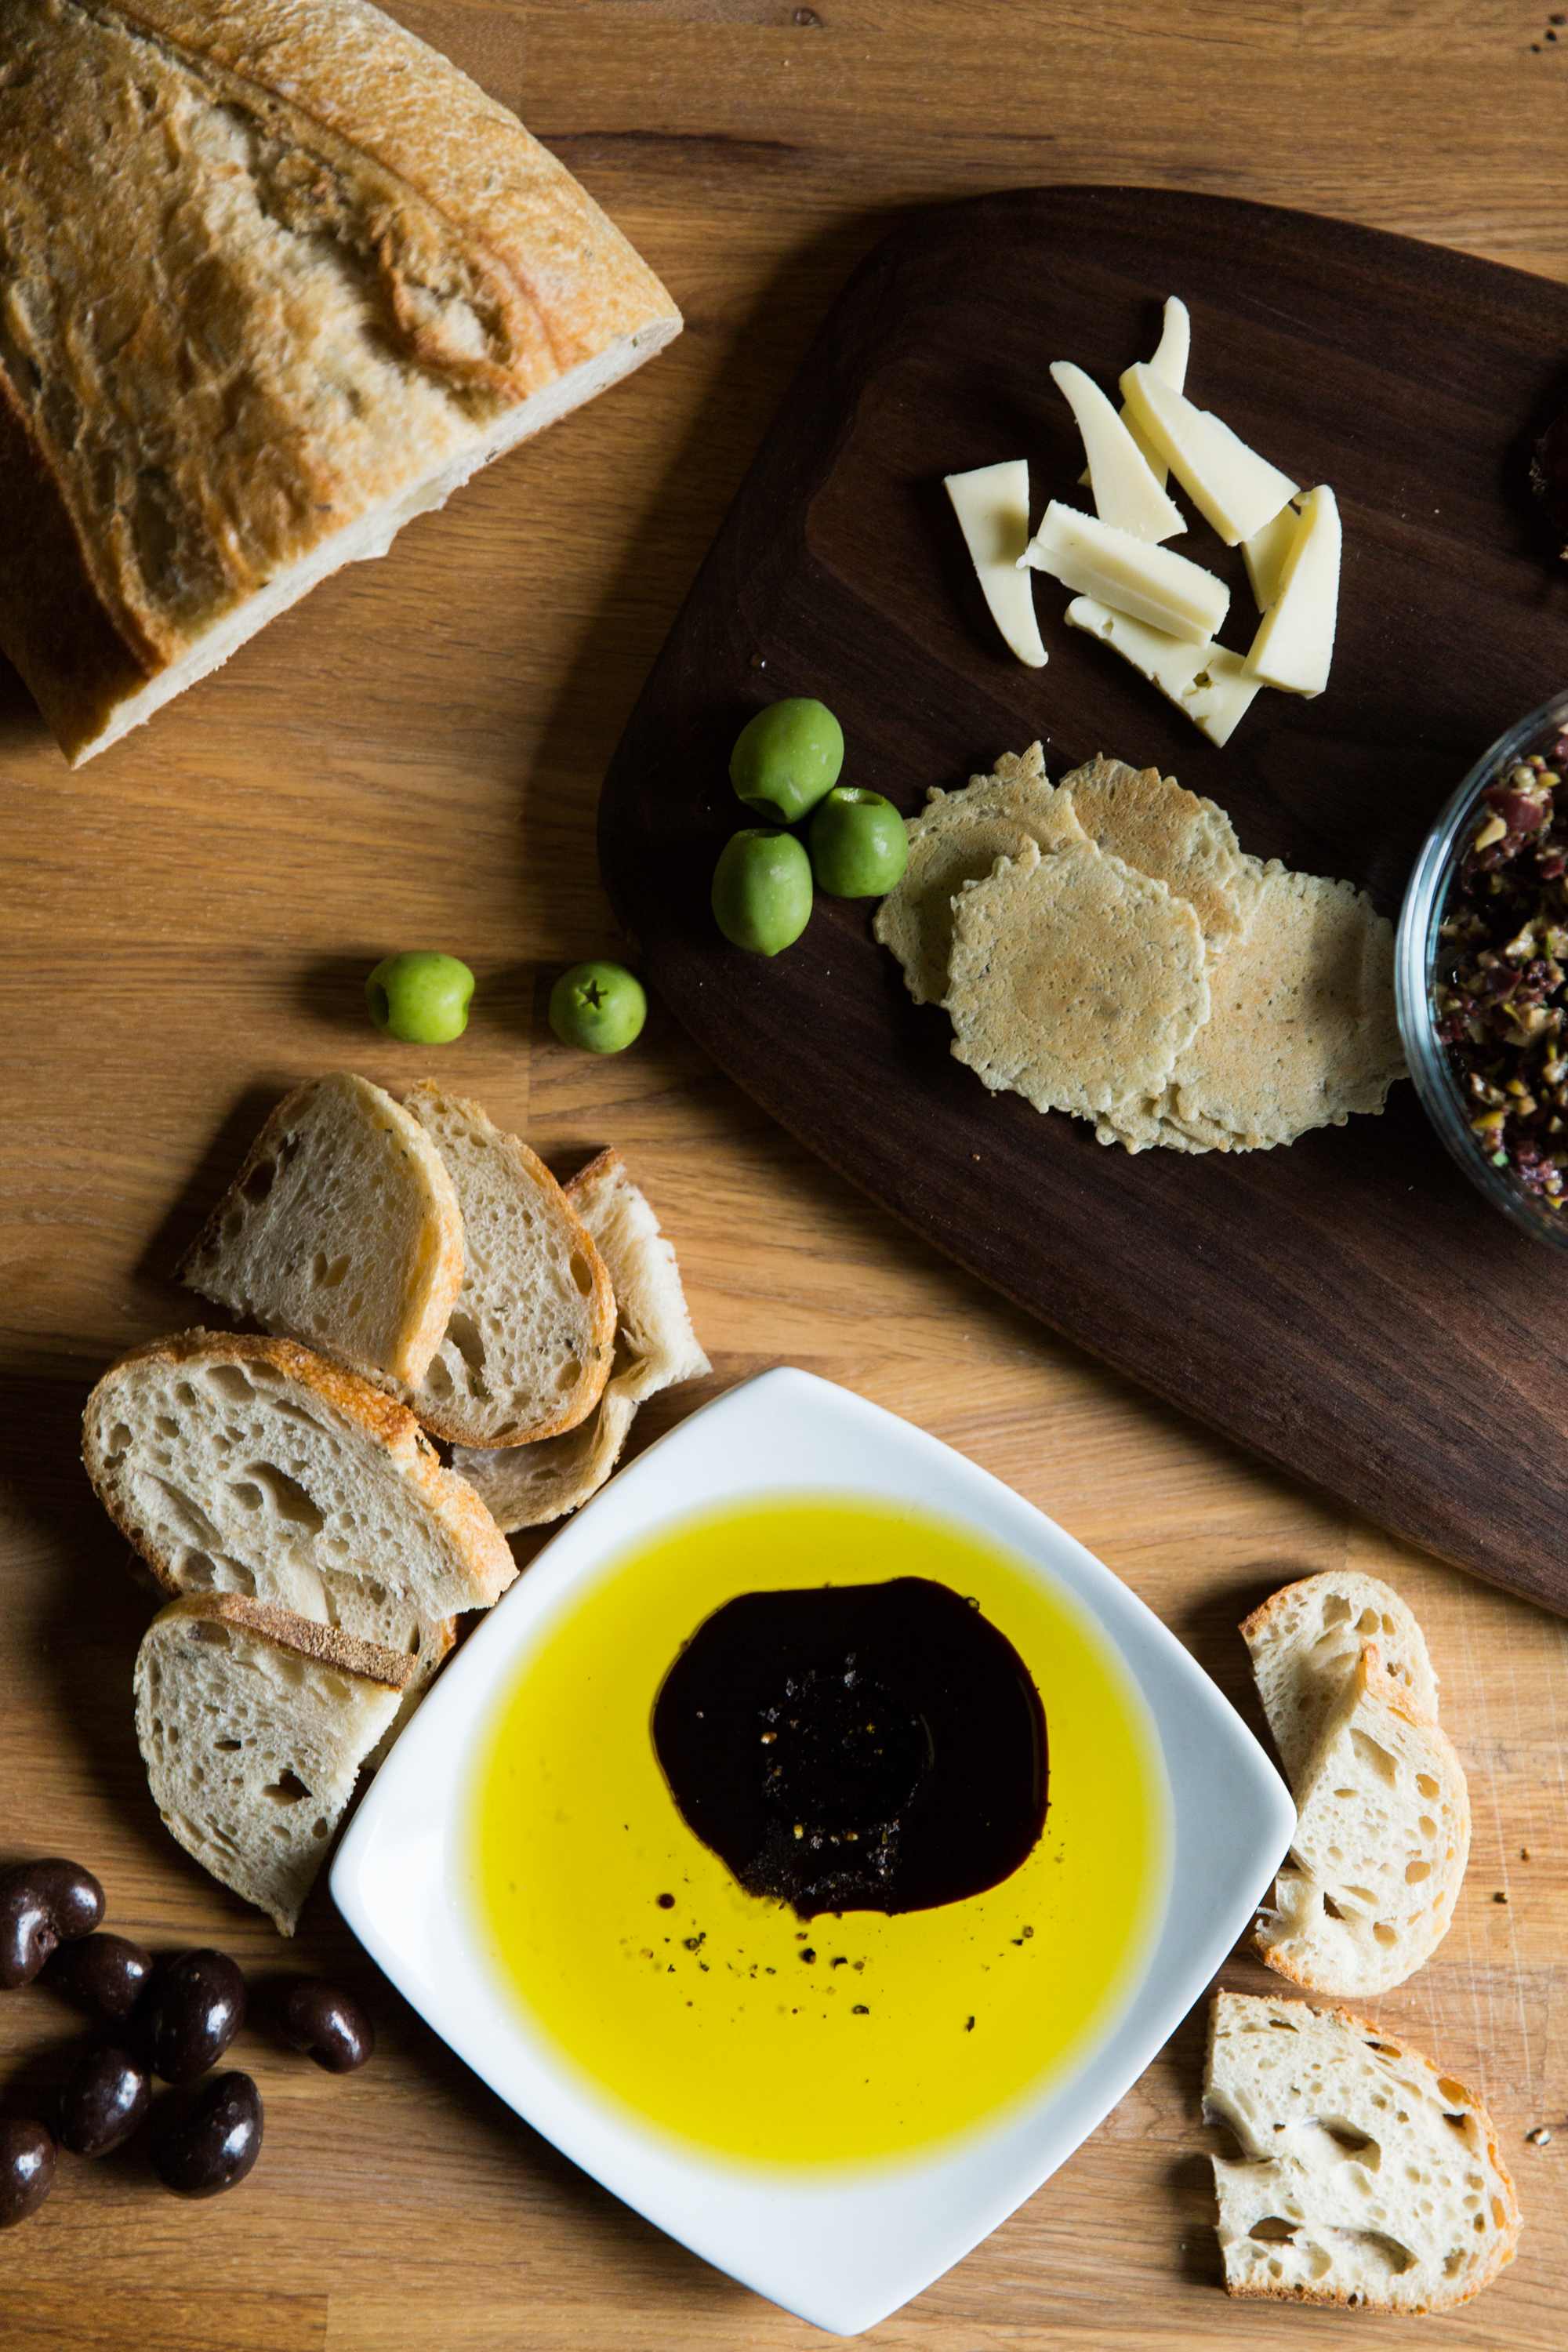 fond life sprouts olive oil bar-11.jpg